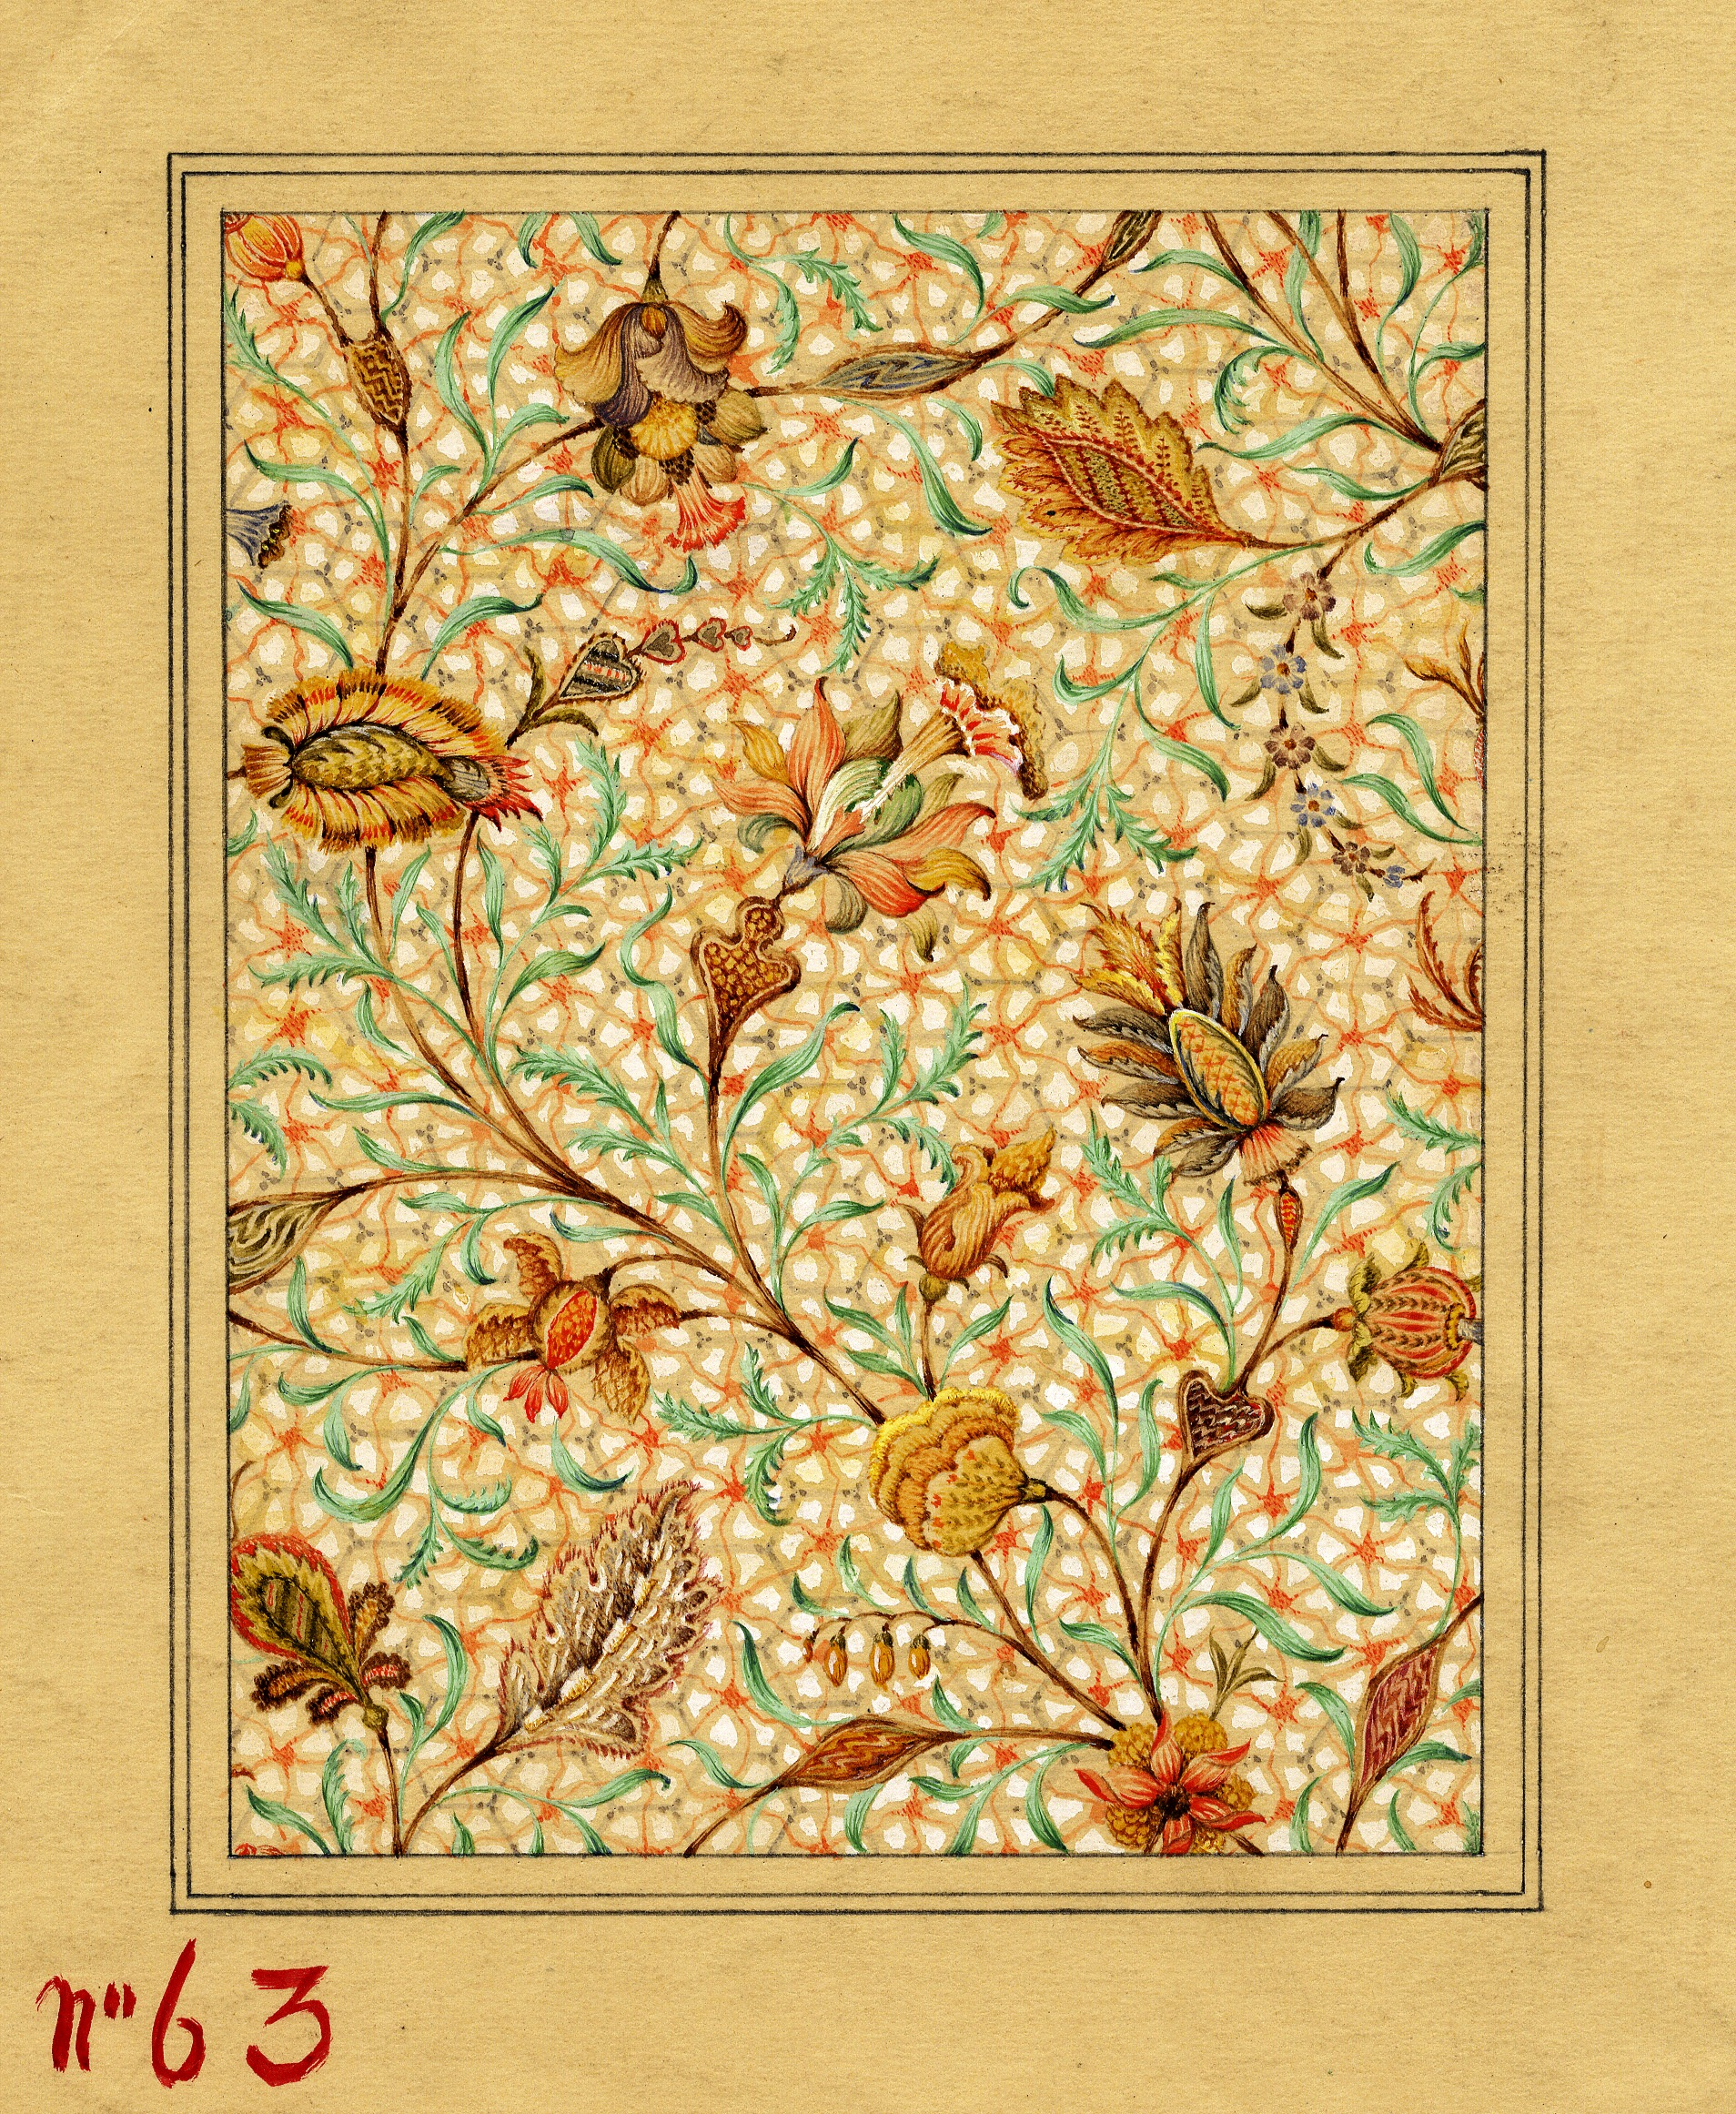 william morris essay help Home william morris essay help william morris archive morris s life william morris archive fiona maccarthy s excellent brief biography of william morris is available in the oxford dictionary of national biography requires log in article images about william morris arts amp crafts on pinterest.